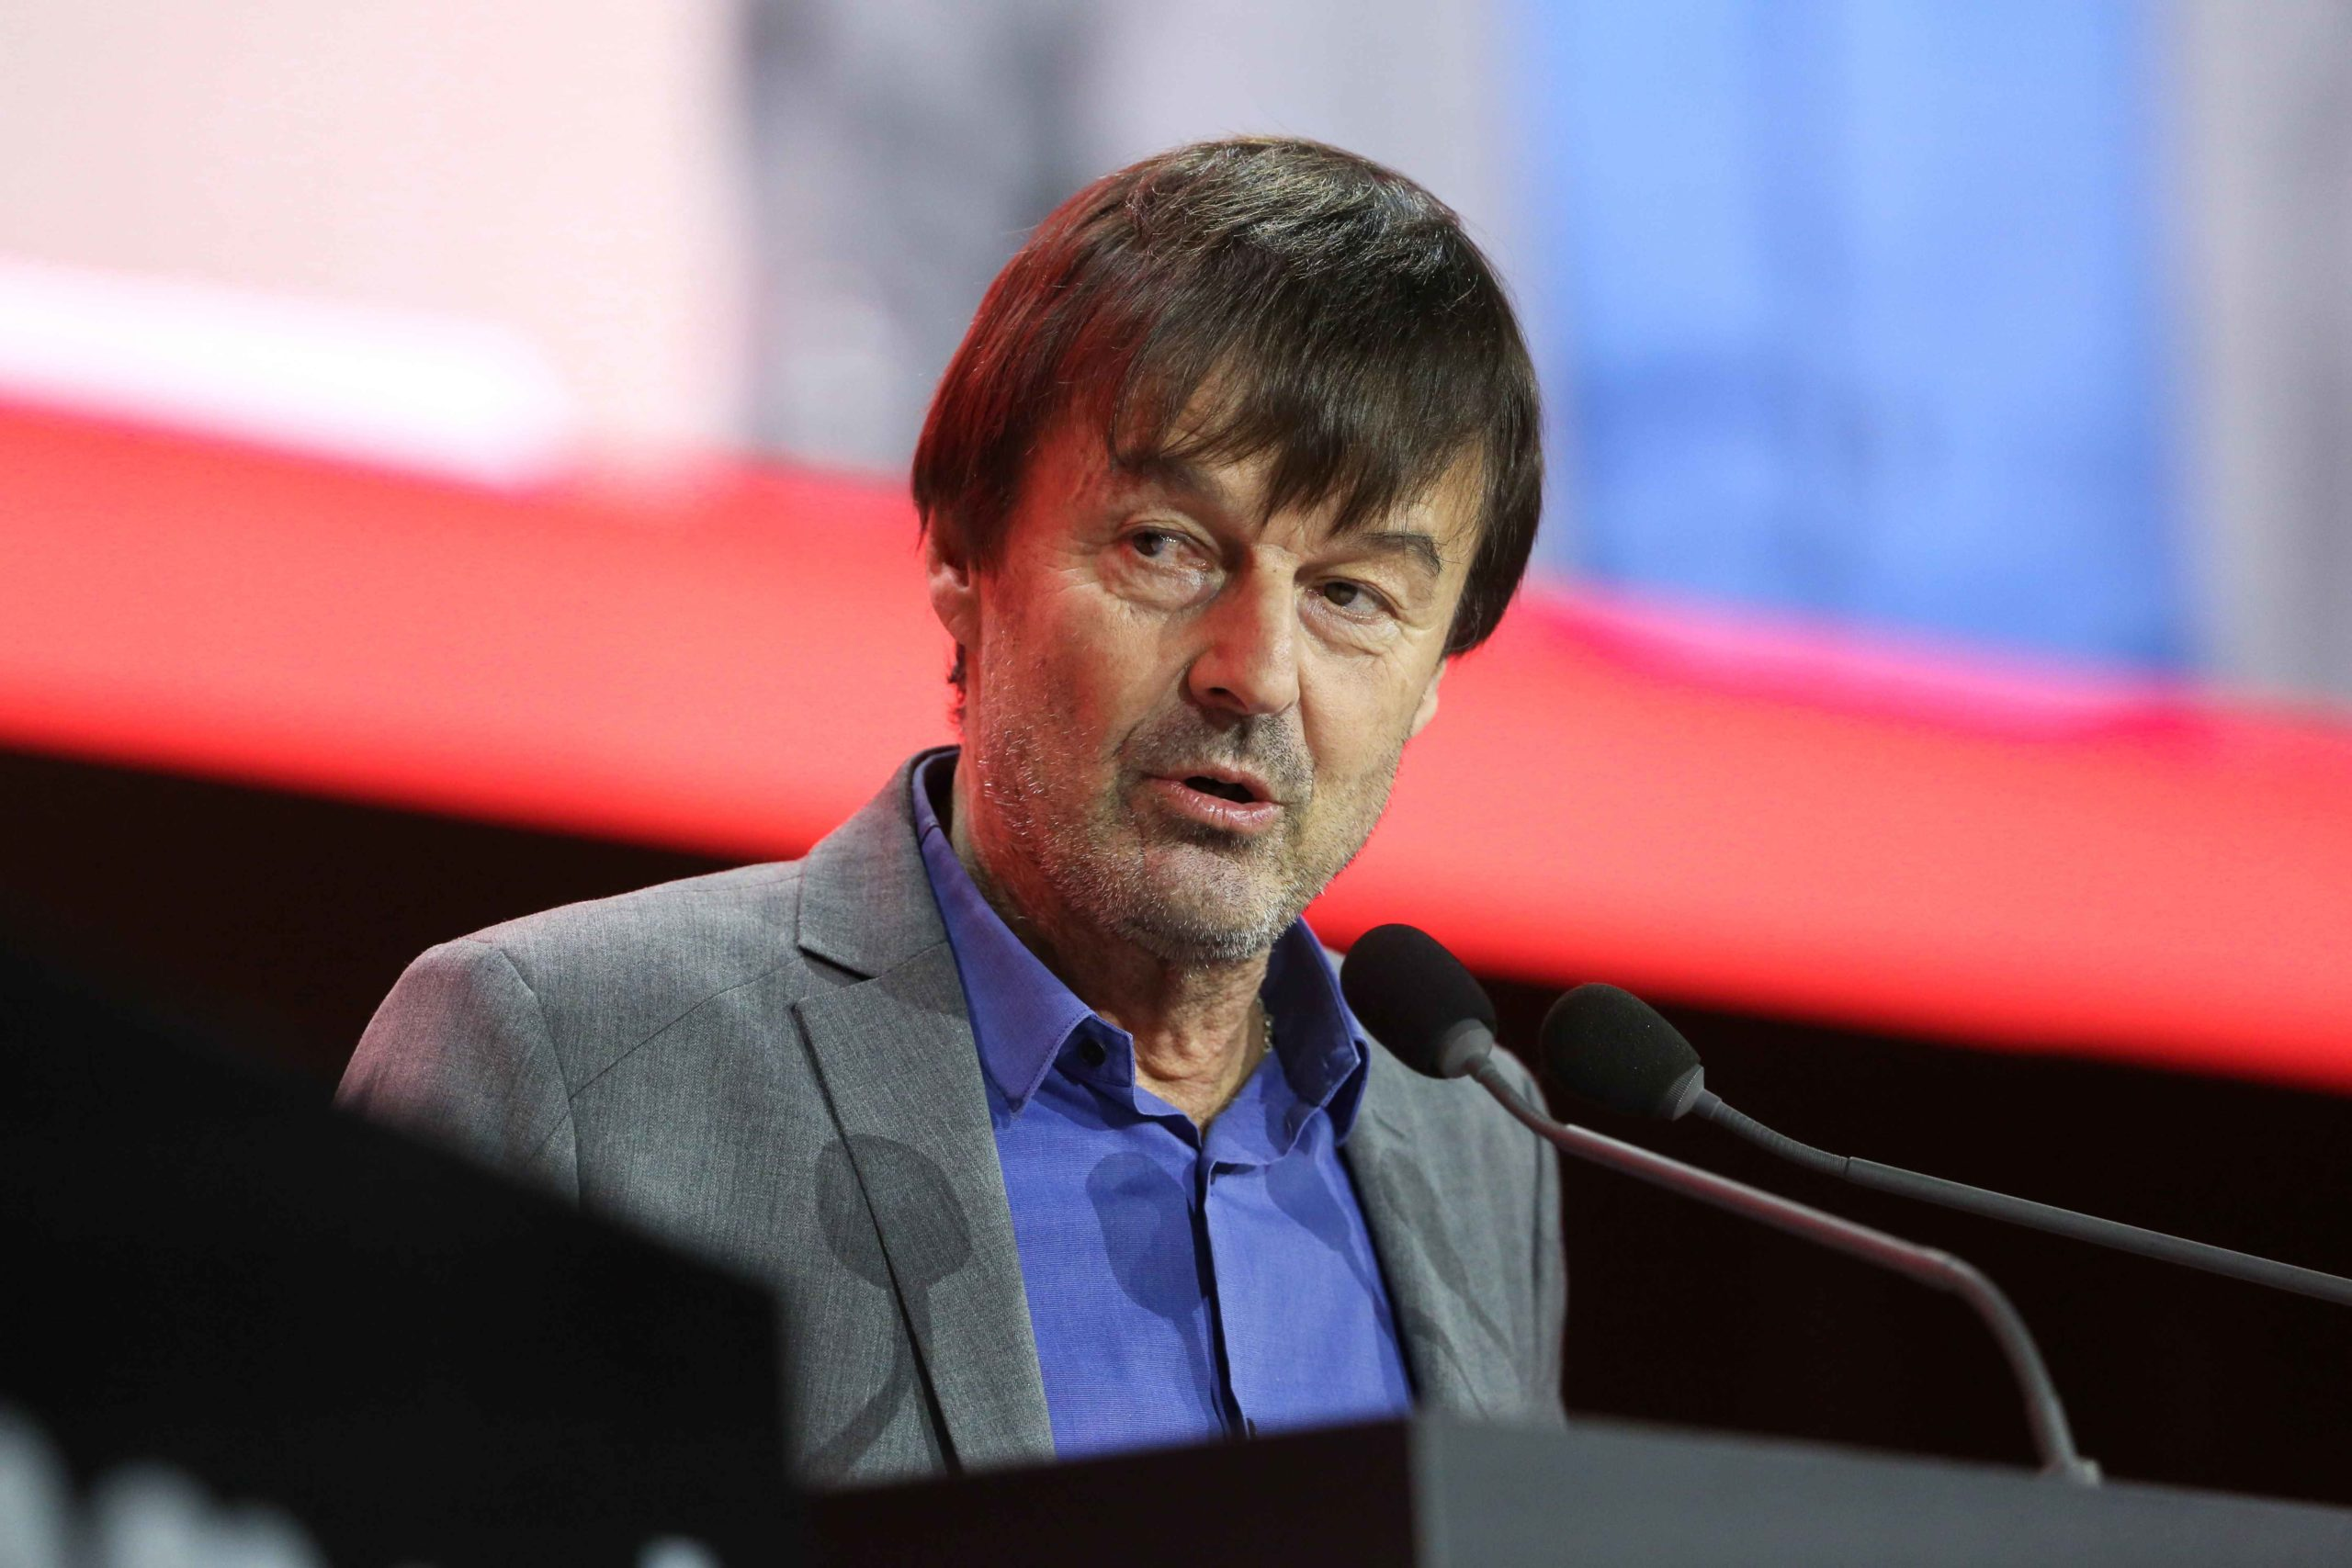 Former French Environment minister Nicolas Hulot delivers a speech during a debate following a report of the Abbe Pierre Foundation on poor quality housing conditions, on January 31, 2020 in La Defense, near Paris.